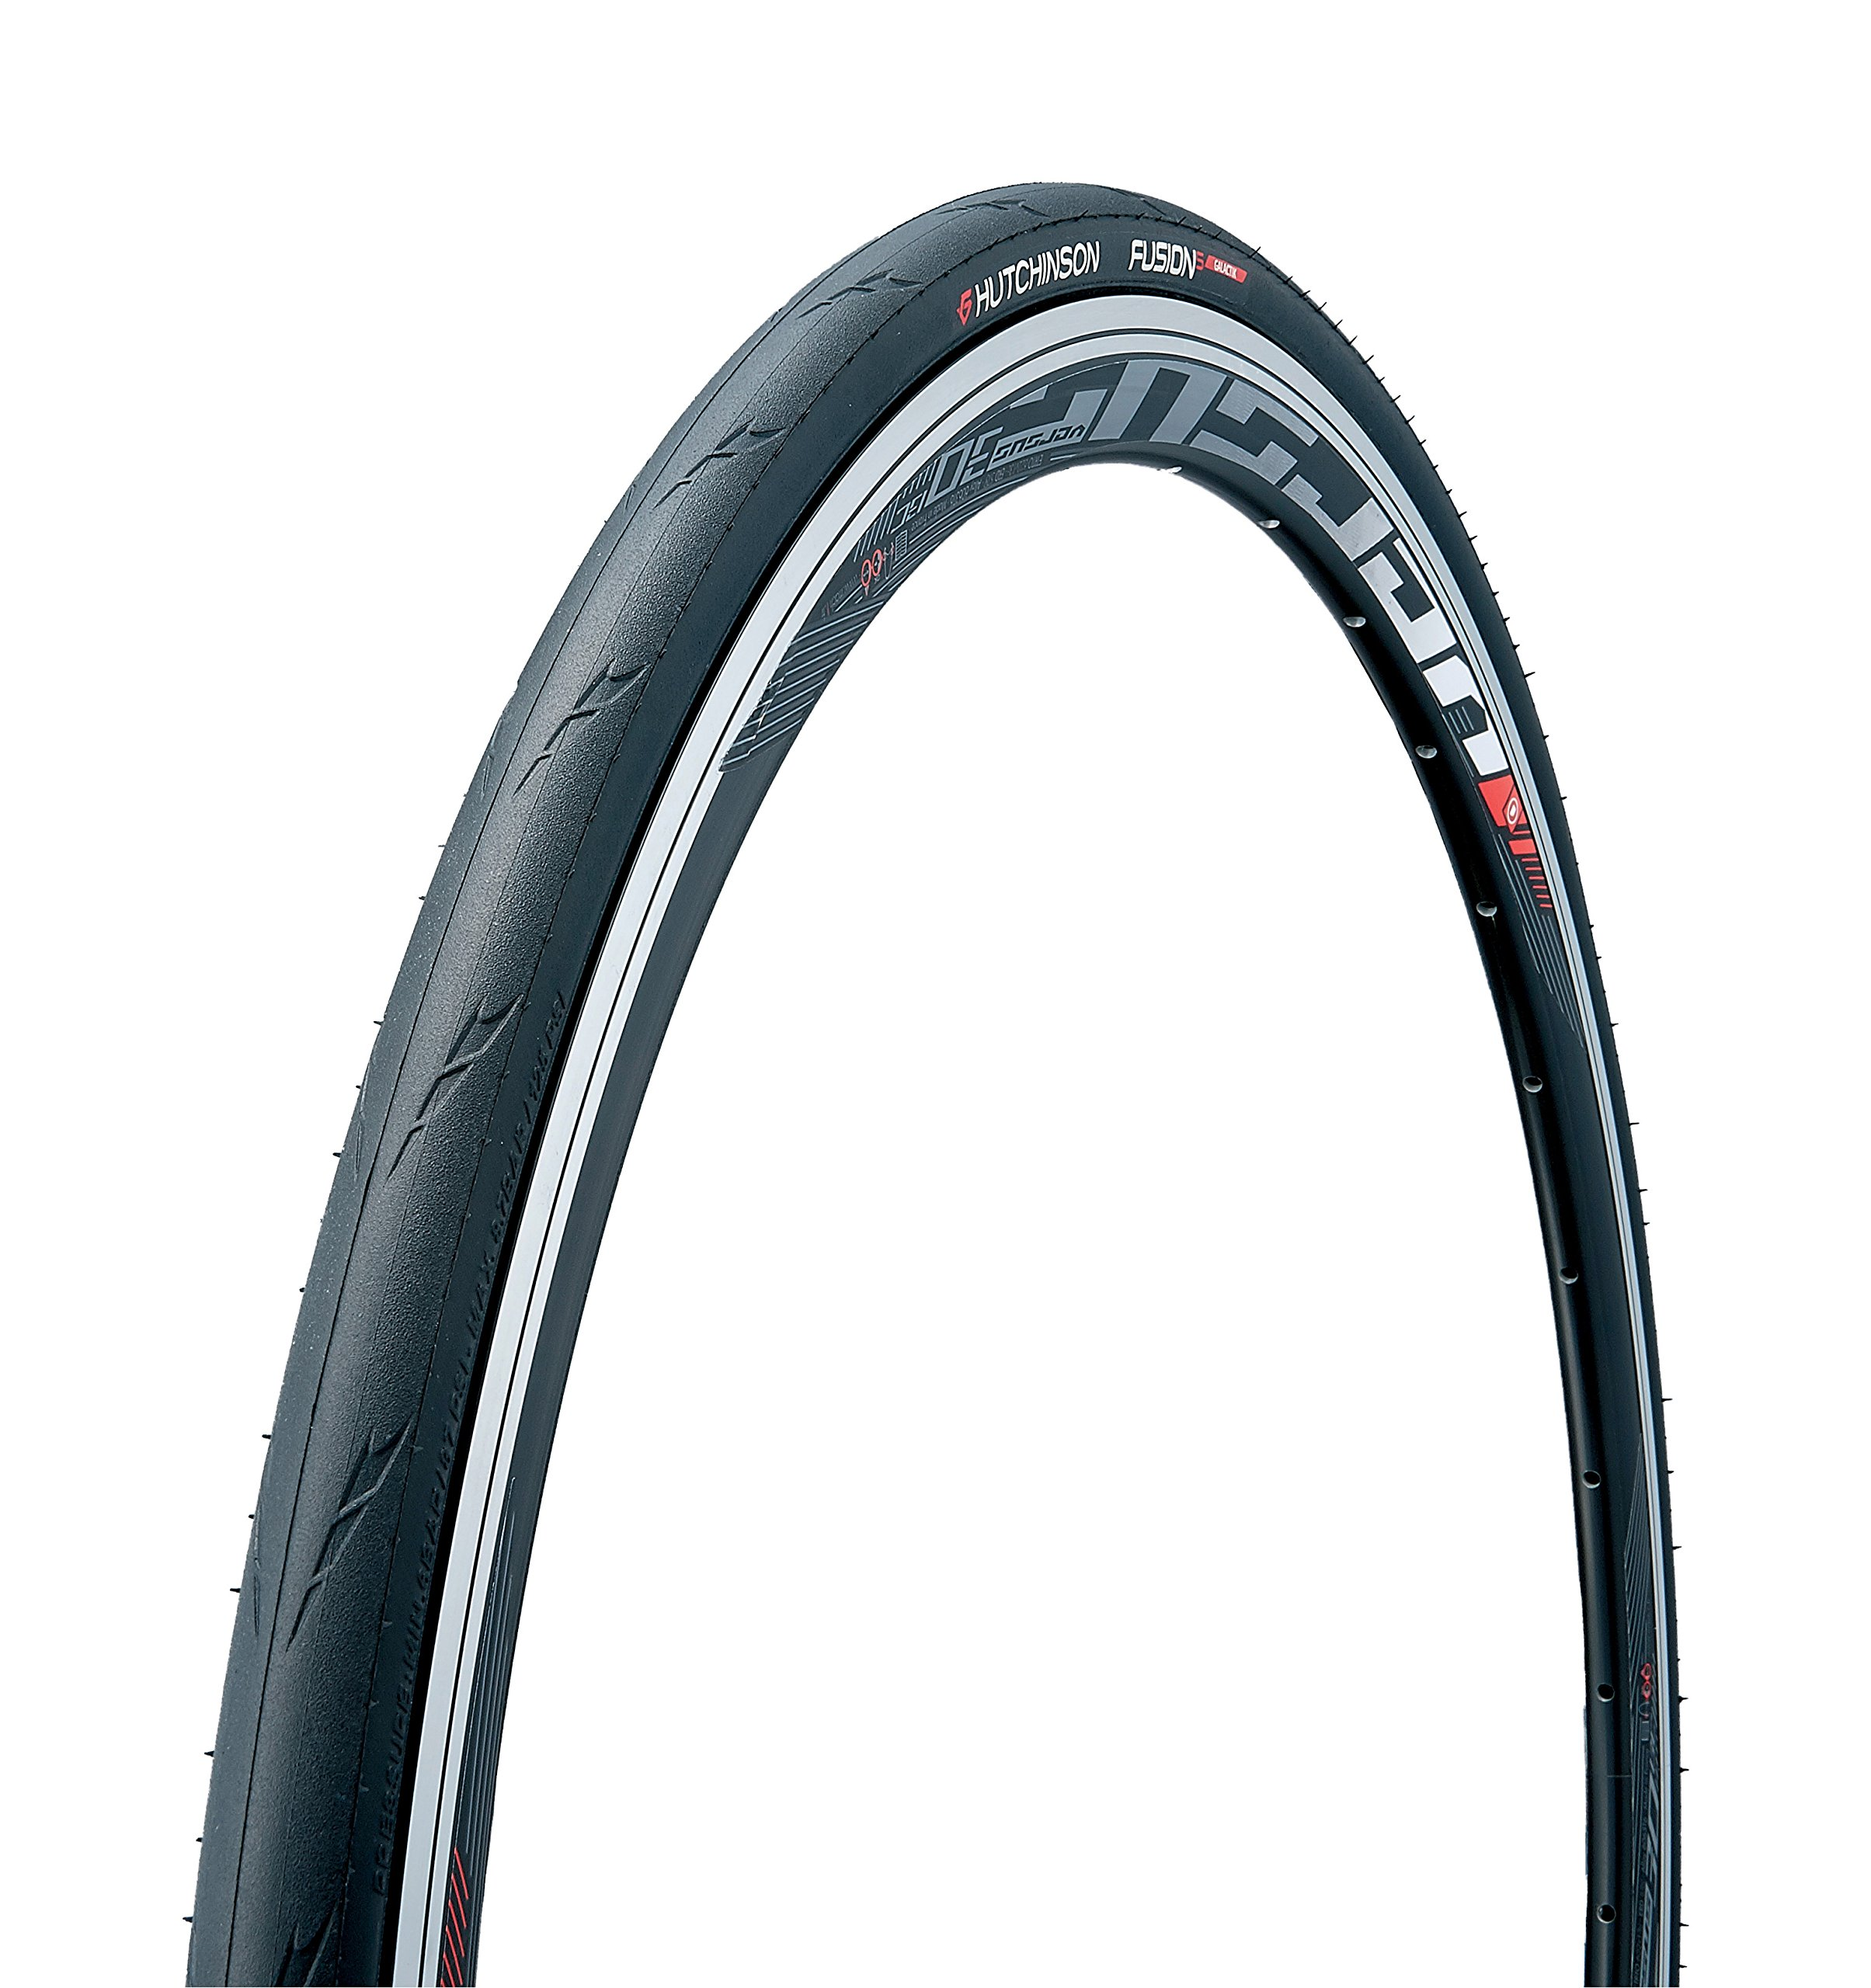 Hutchinson New 2018 FUSION 5 Galactik Tubeless and Tubeless Ready Bike Tire with the new ElevenSTORM compound (700 x 23 Tubeless)